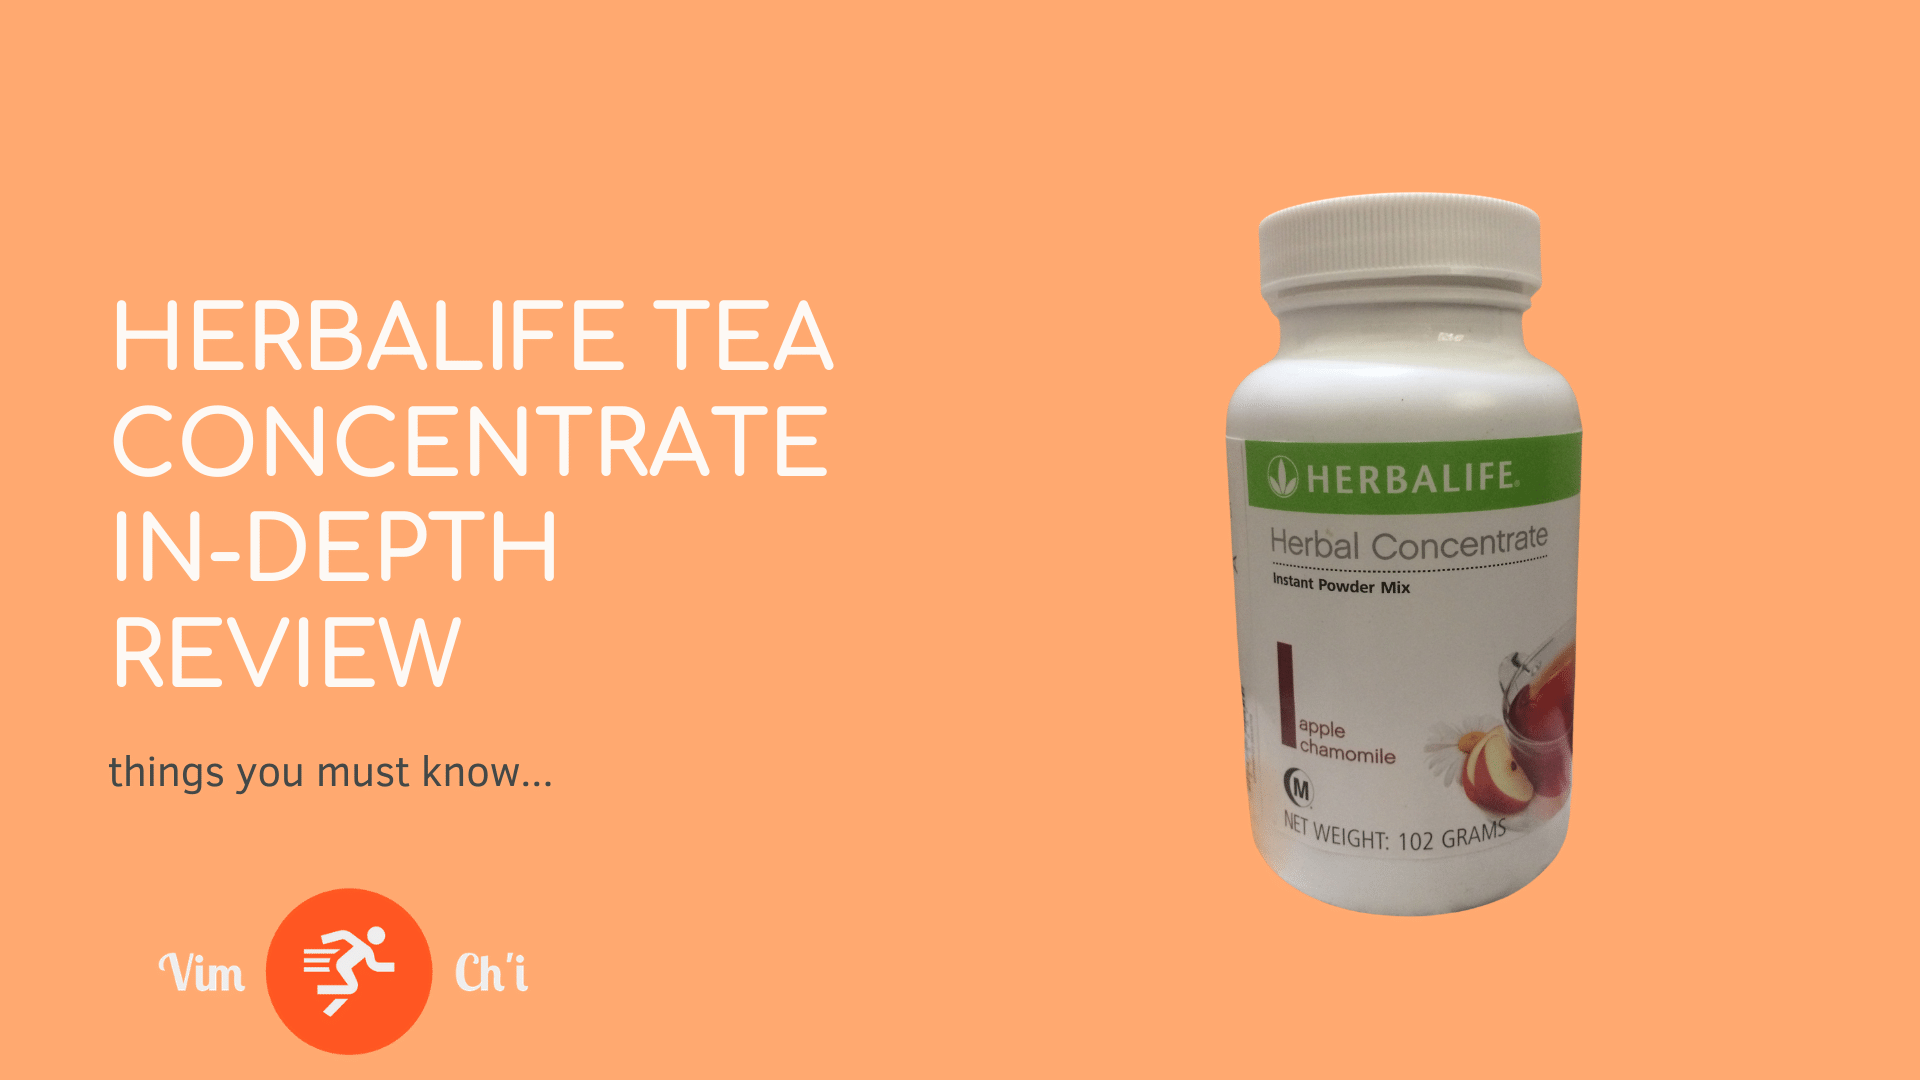 herbalife tea concentrate review